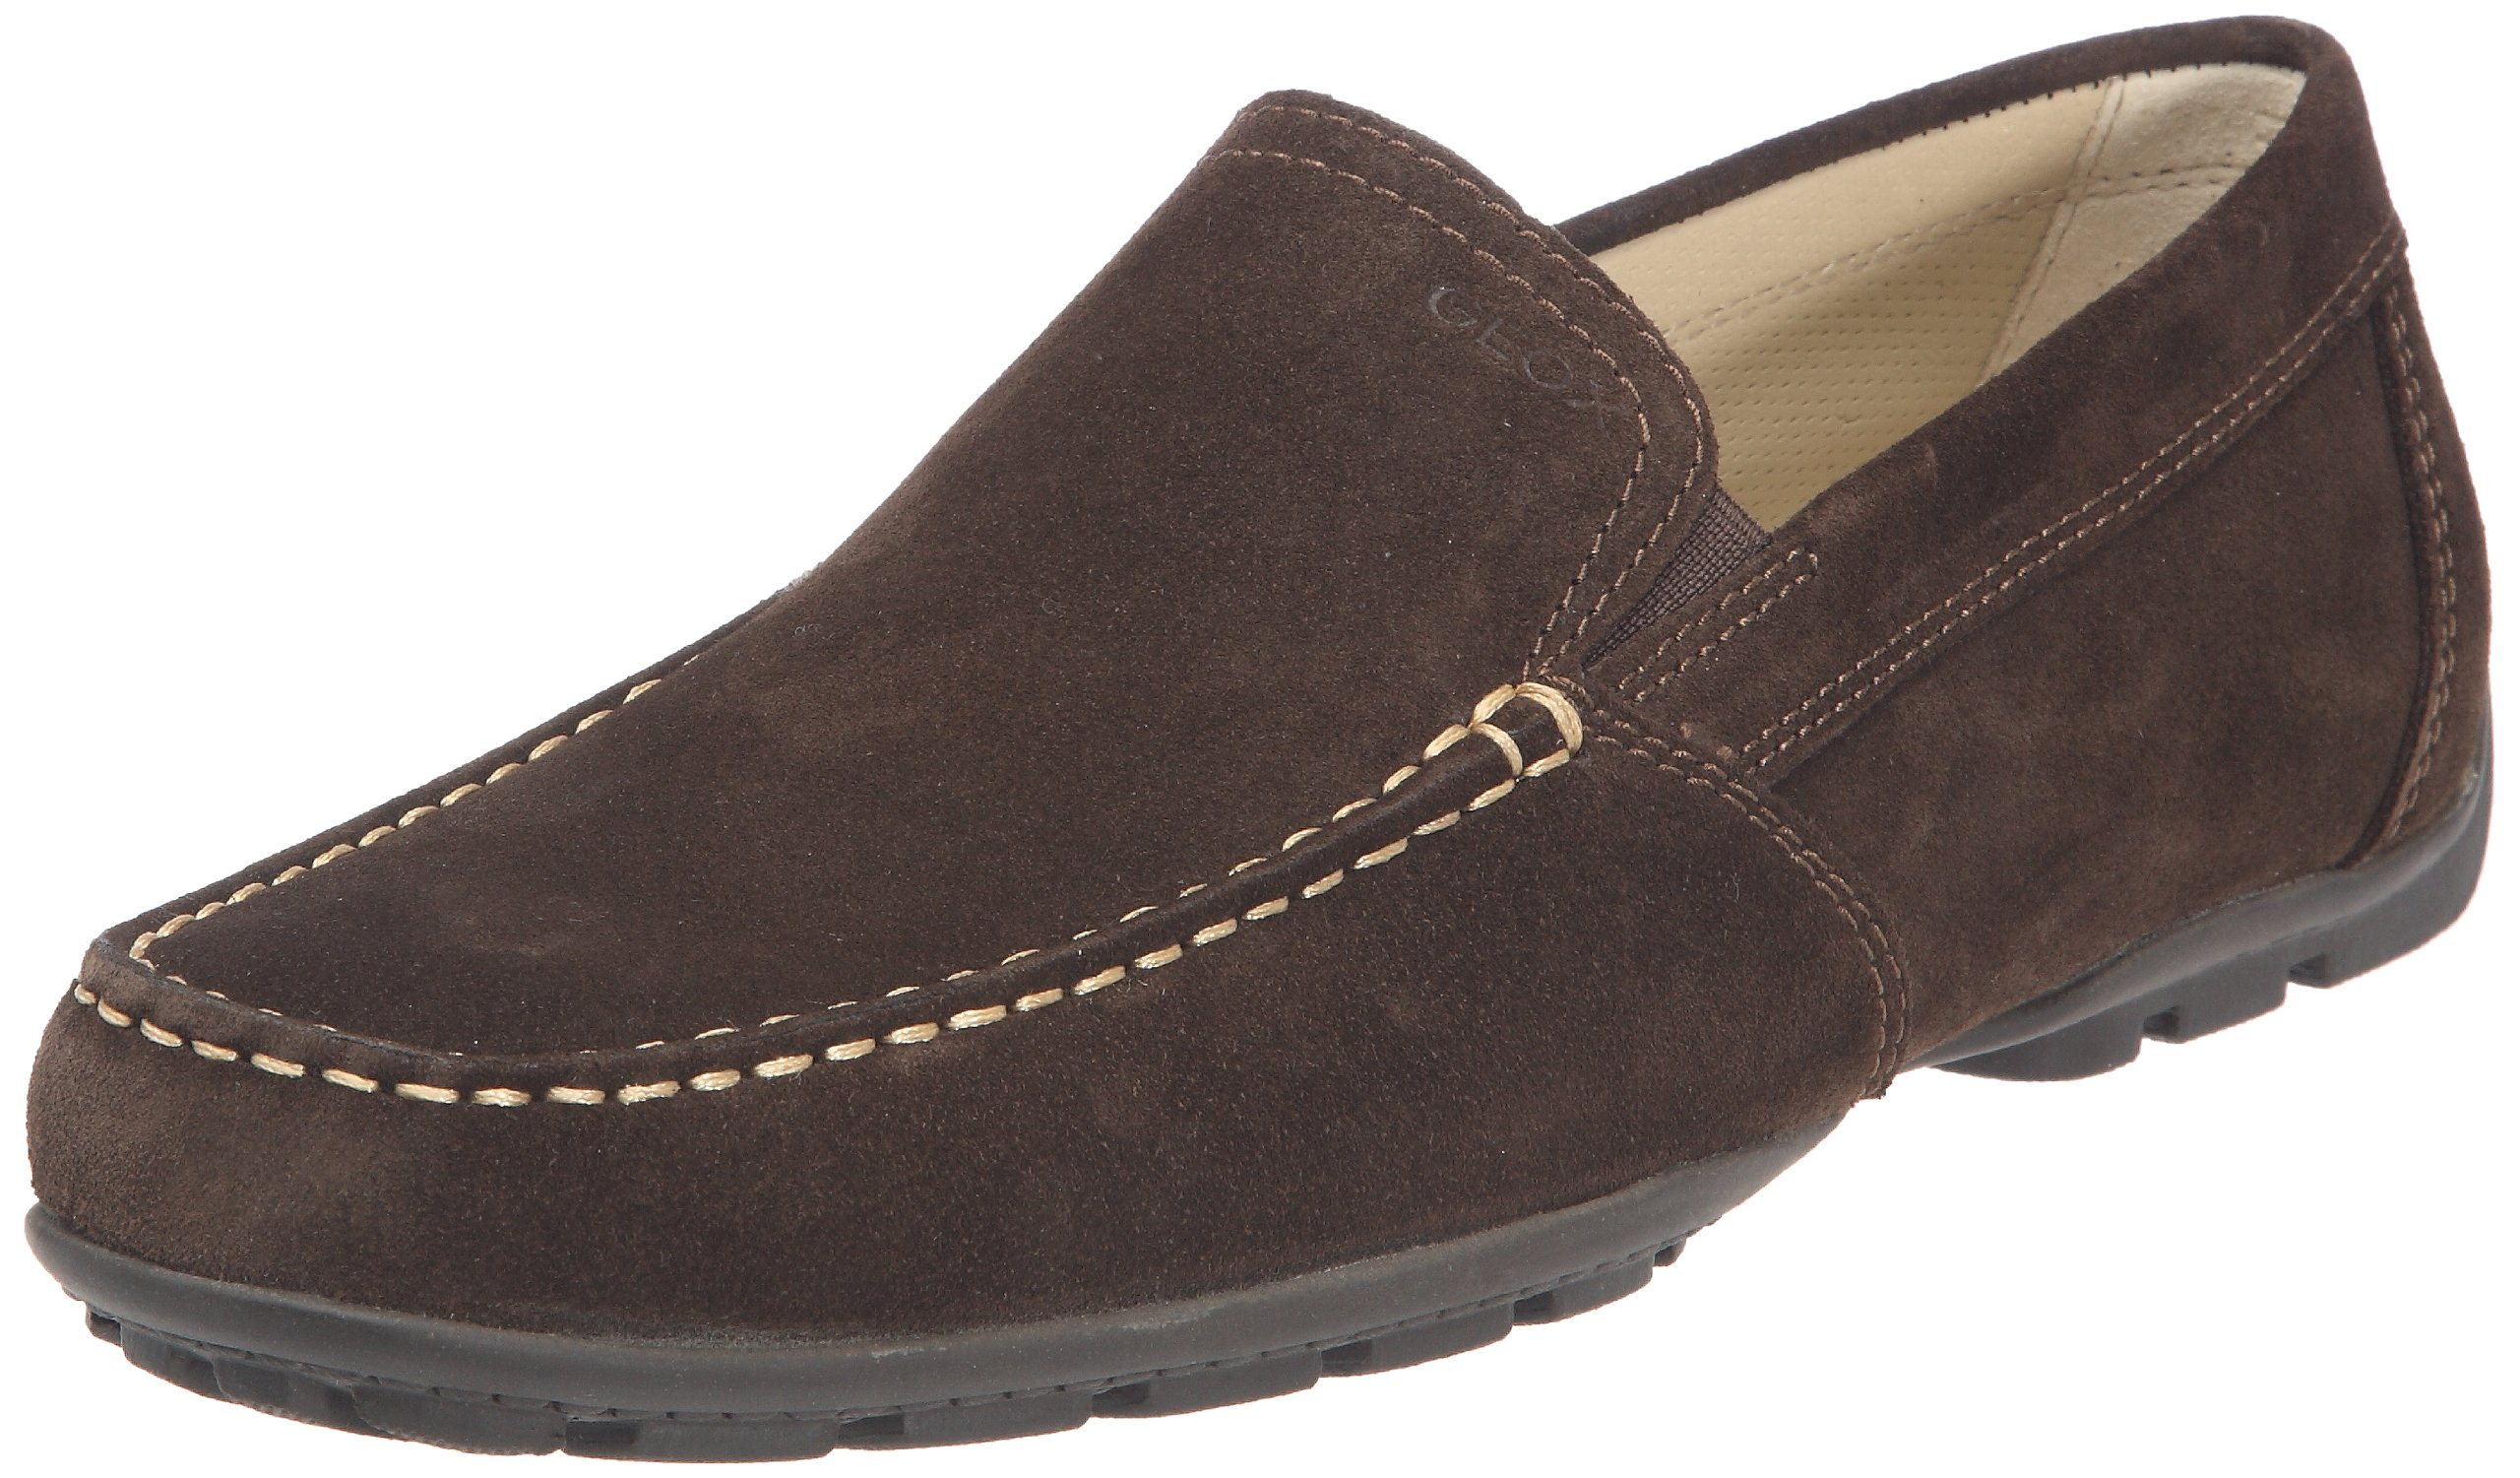 Geox Men's U Monet 18 Penny Loafer,Coffee,43 EU/10 M US